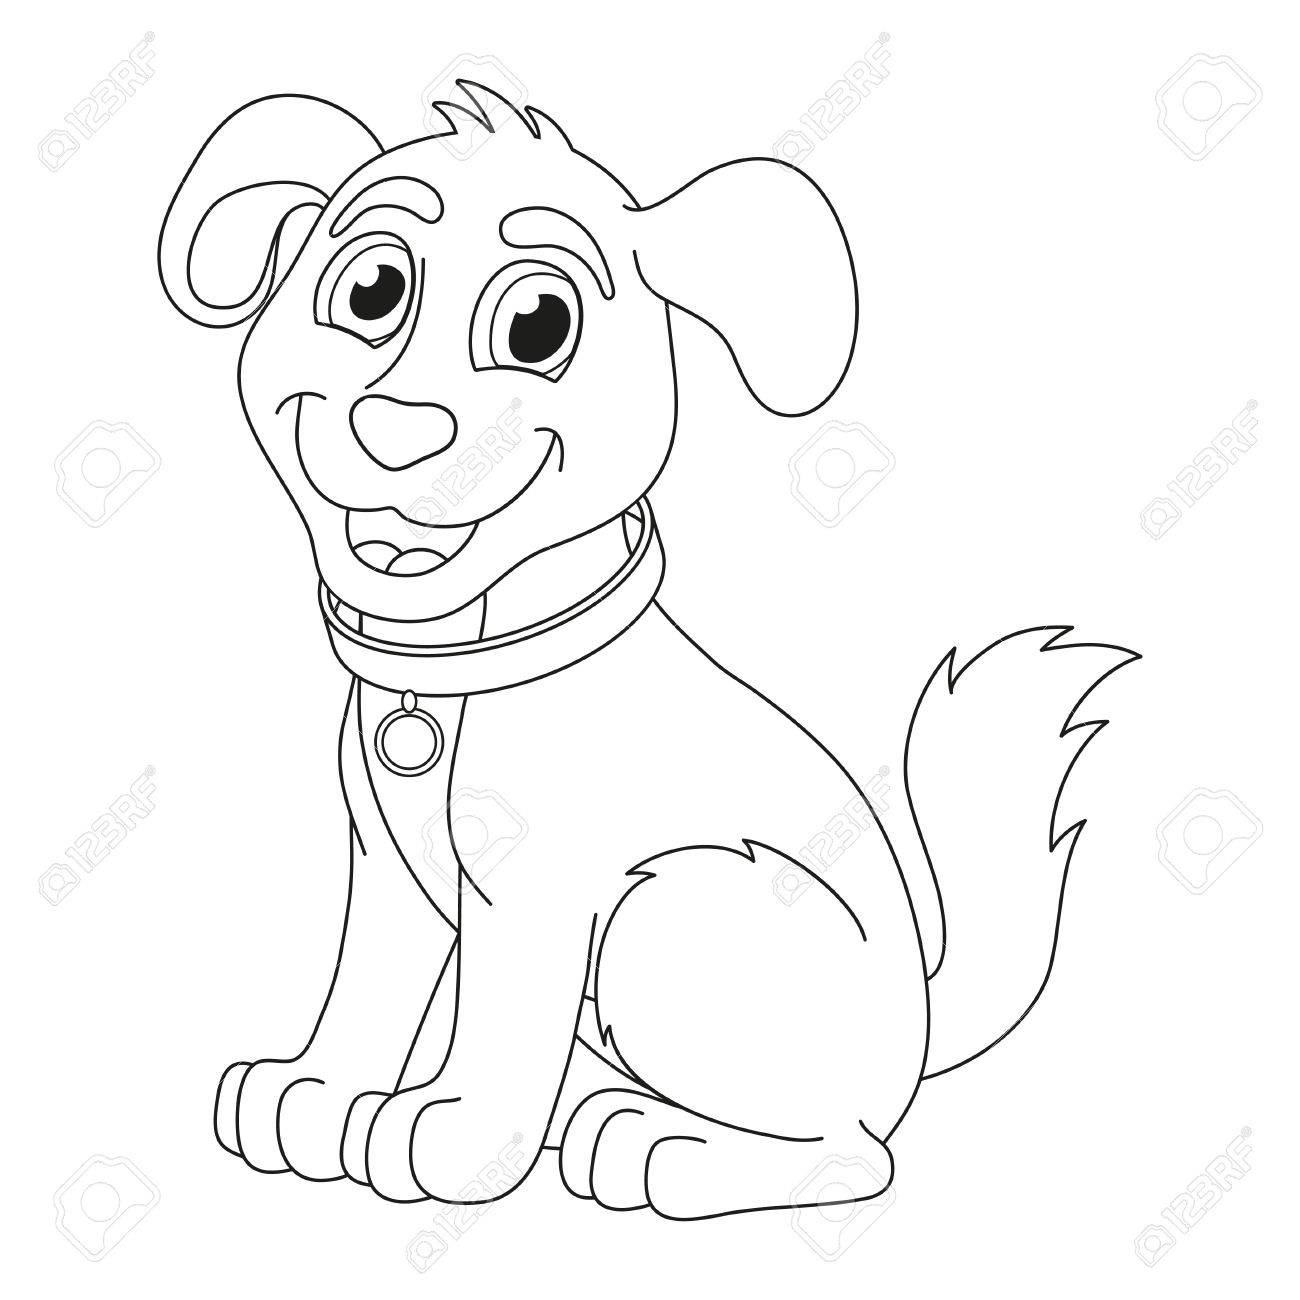 Cartoon Puppy Vector Illustration Of Cute Dog Wearing A Collar With Tag Coloring Book